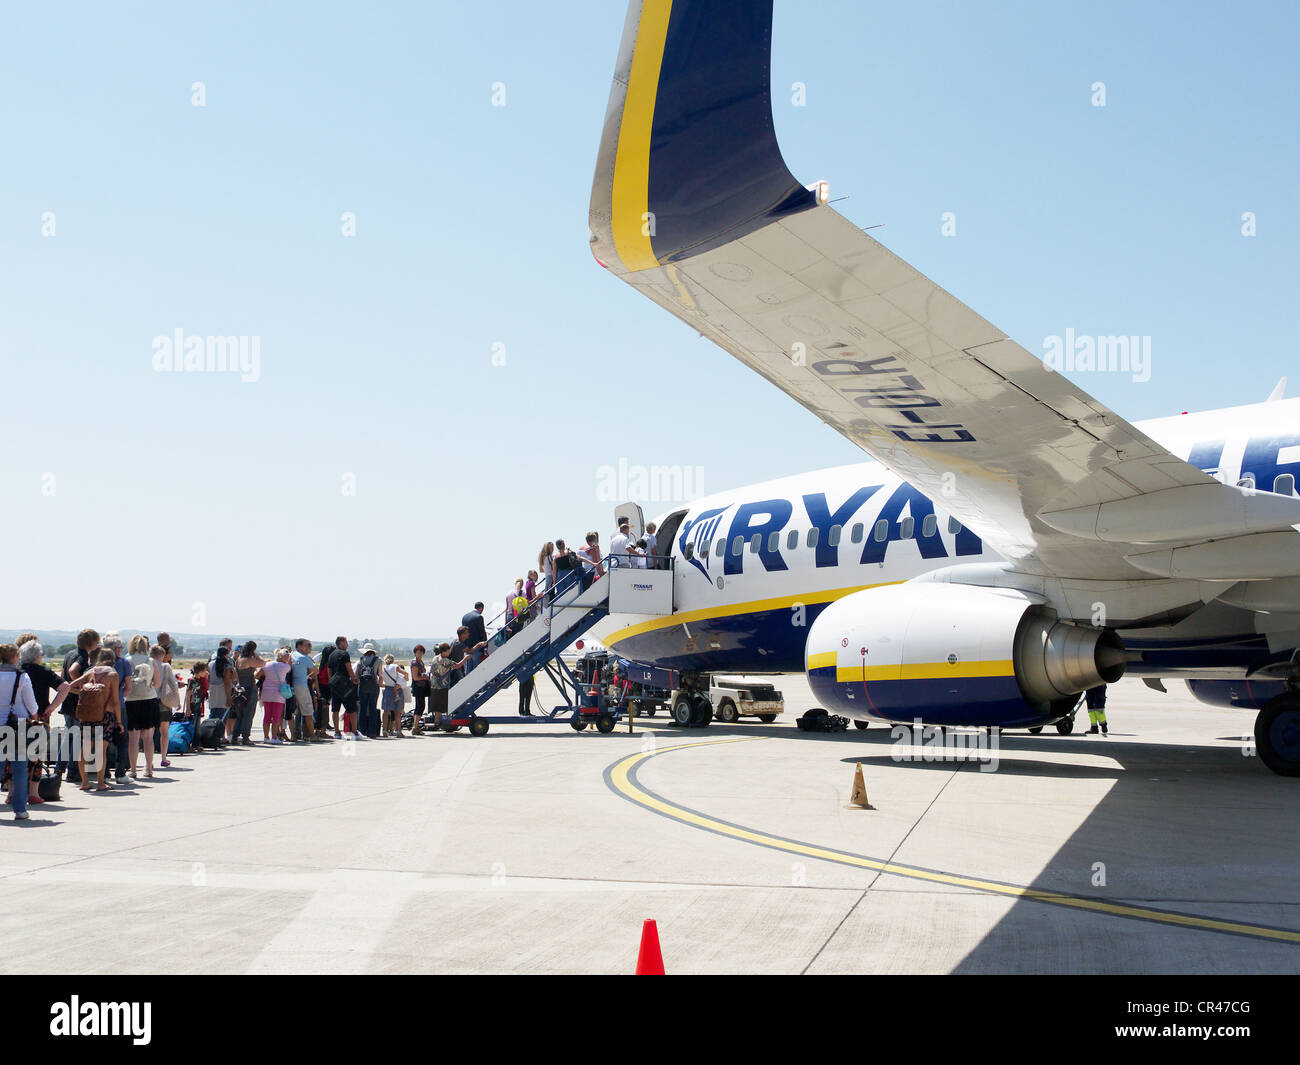 Ryanair passengers in a queue at the airfield waiting to board an airplane, Frankfurt-Hahn Airport, Rhineland-Palatinate - Stock Image